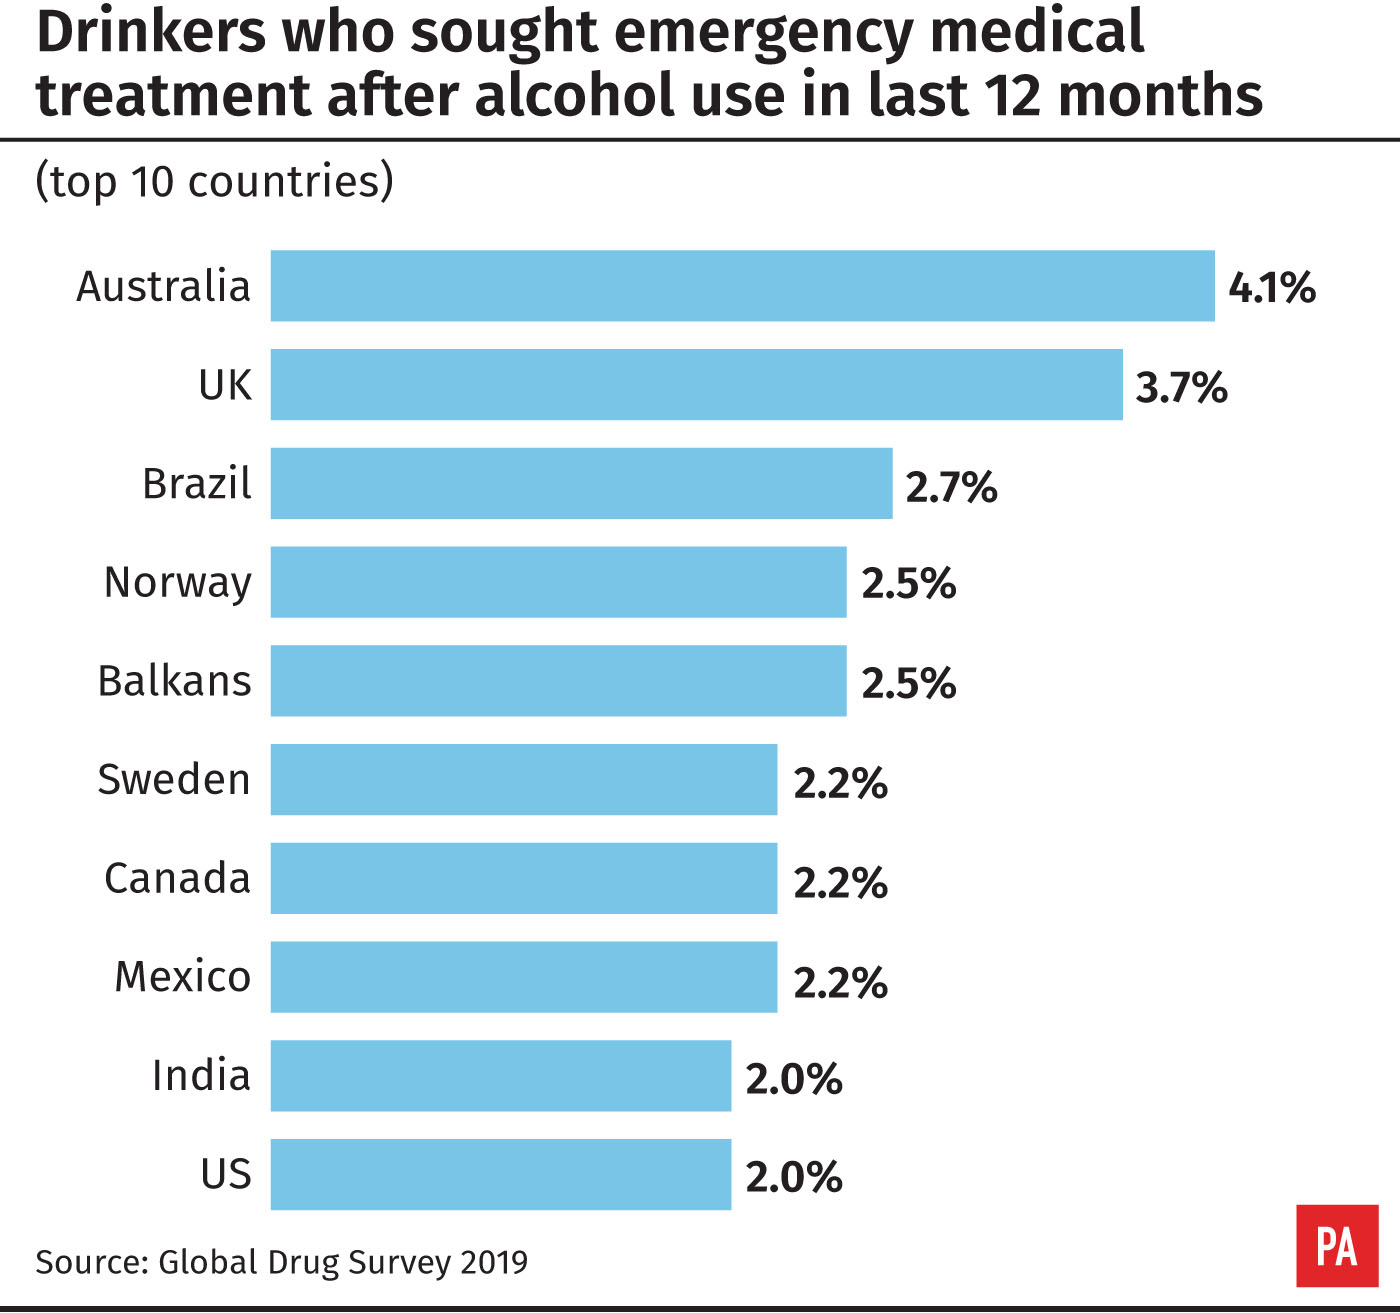 Drinkers who sought emergency medical treatment after alcohol use in last 12 months